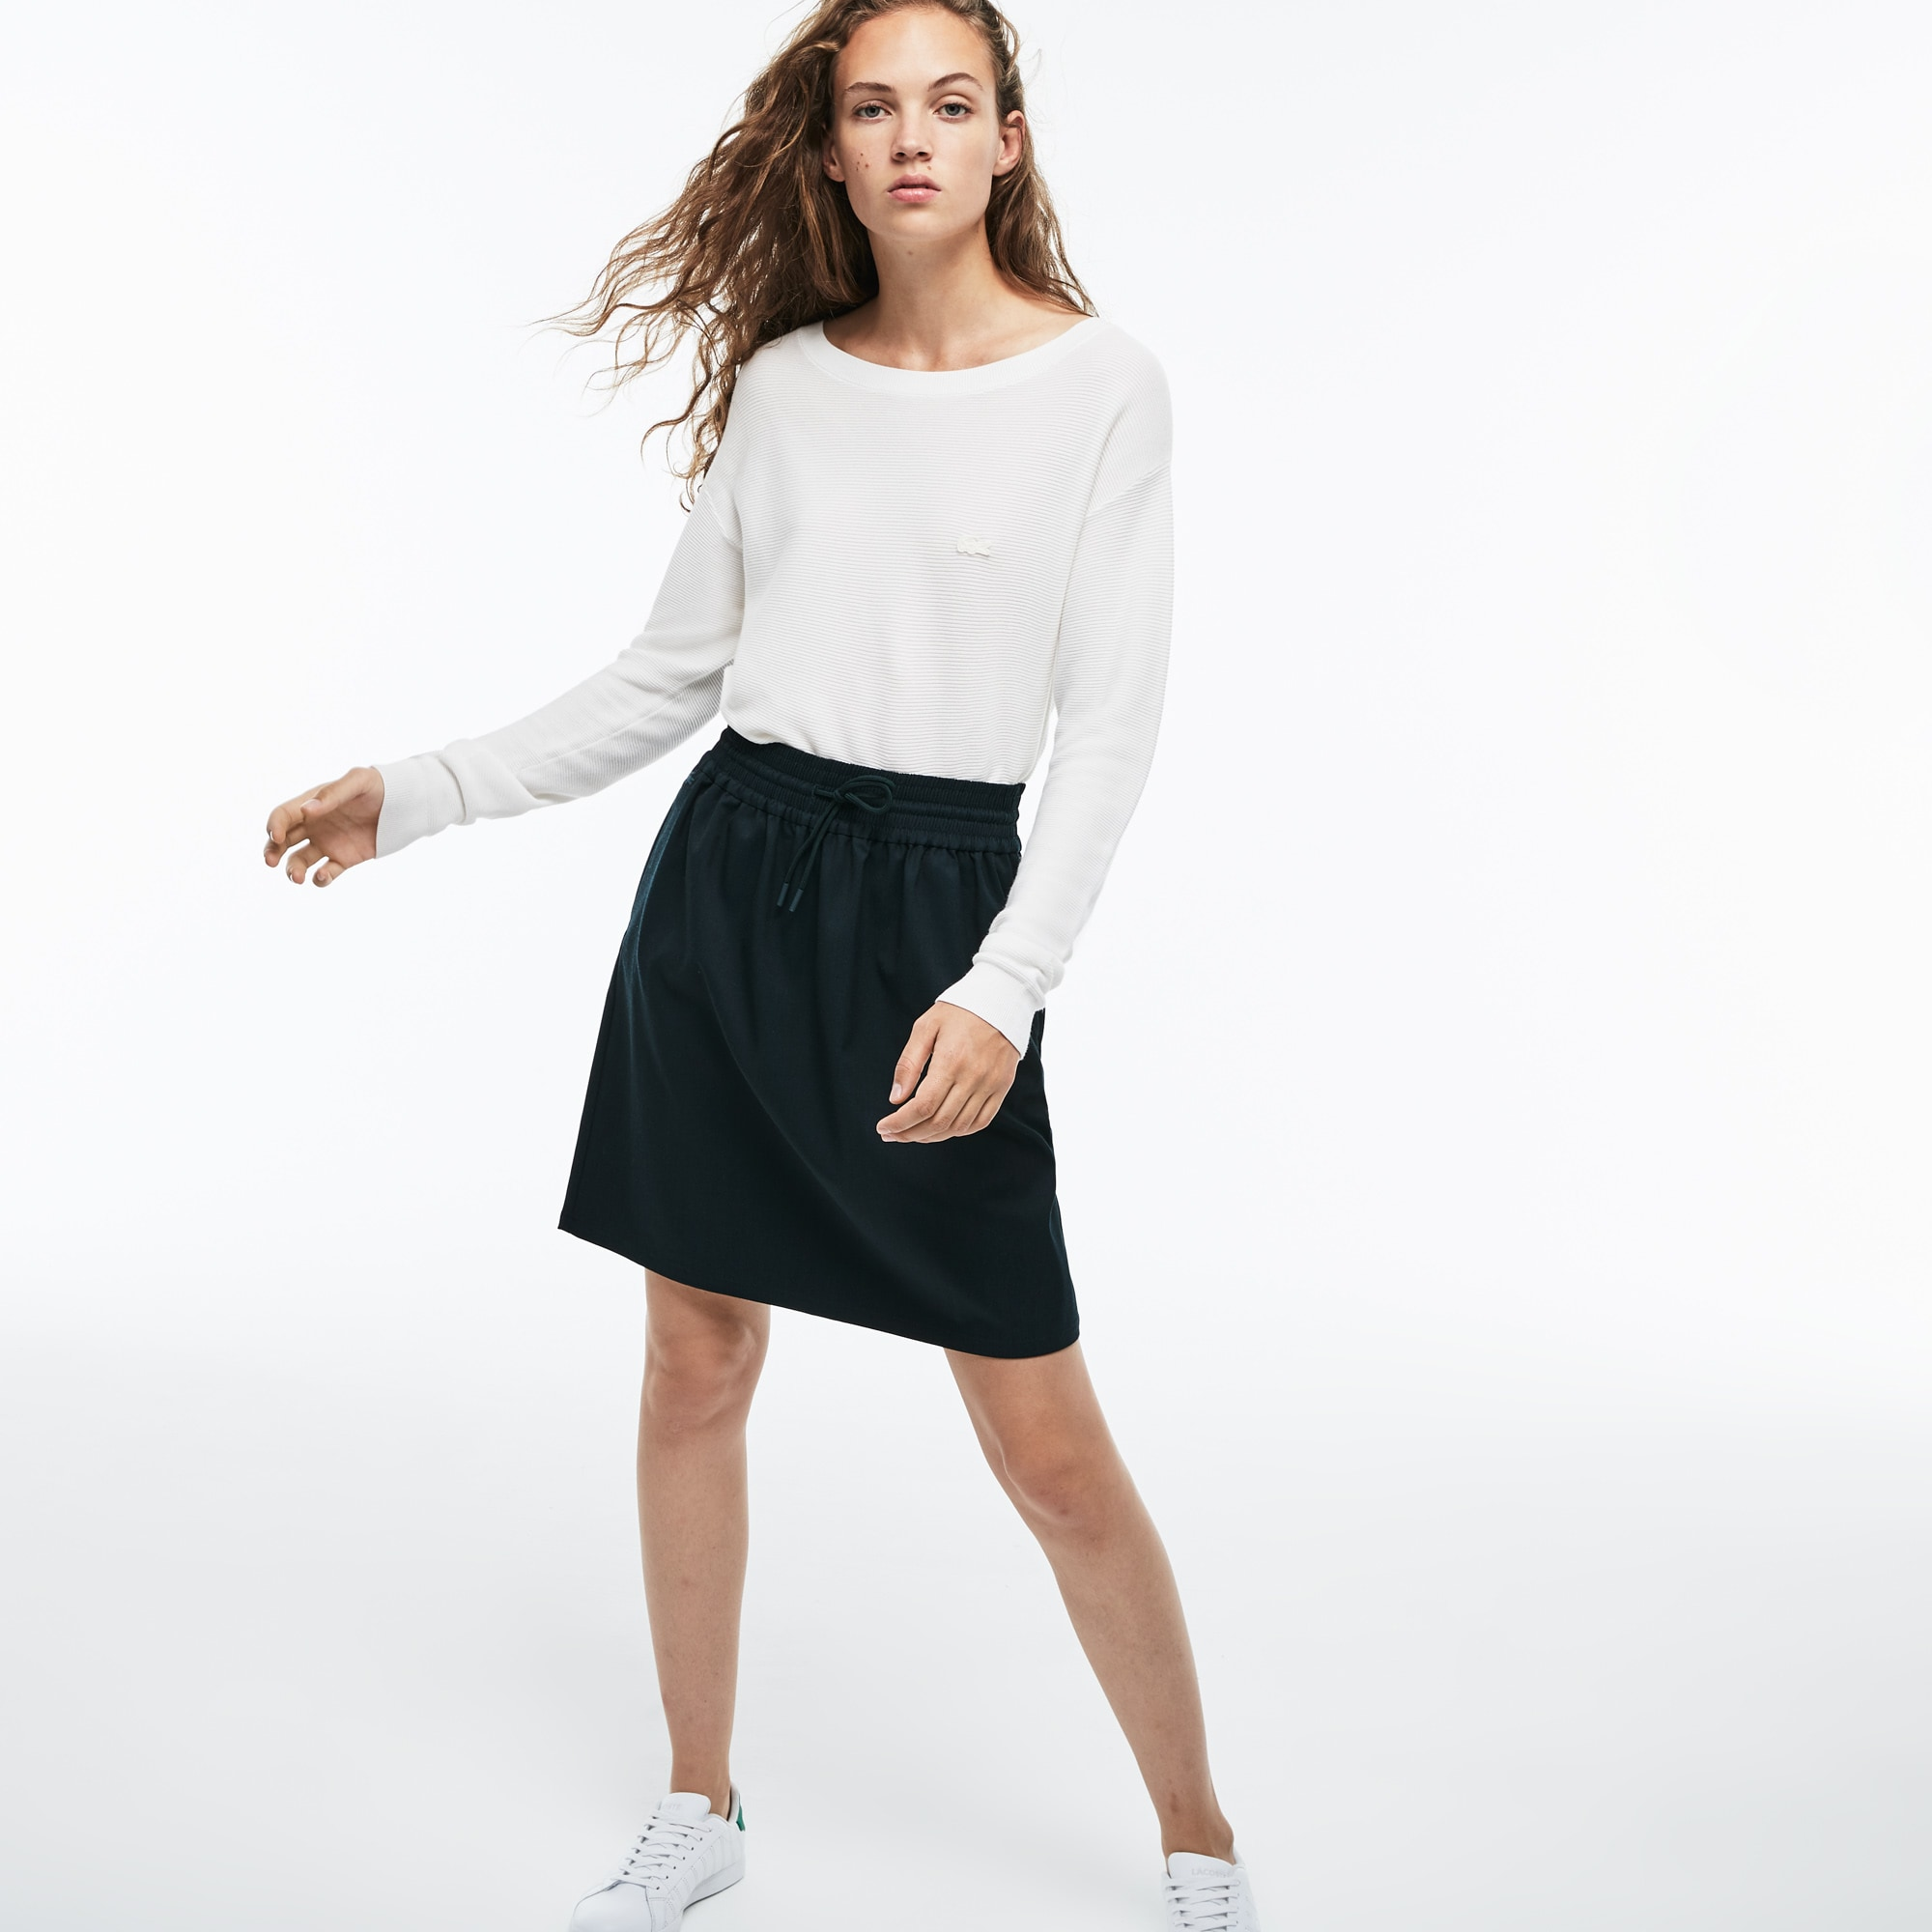 Women's Elasticized Waist Flowing Stretch Wool Knit Skirt